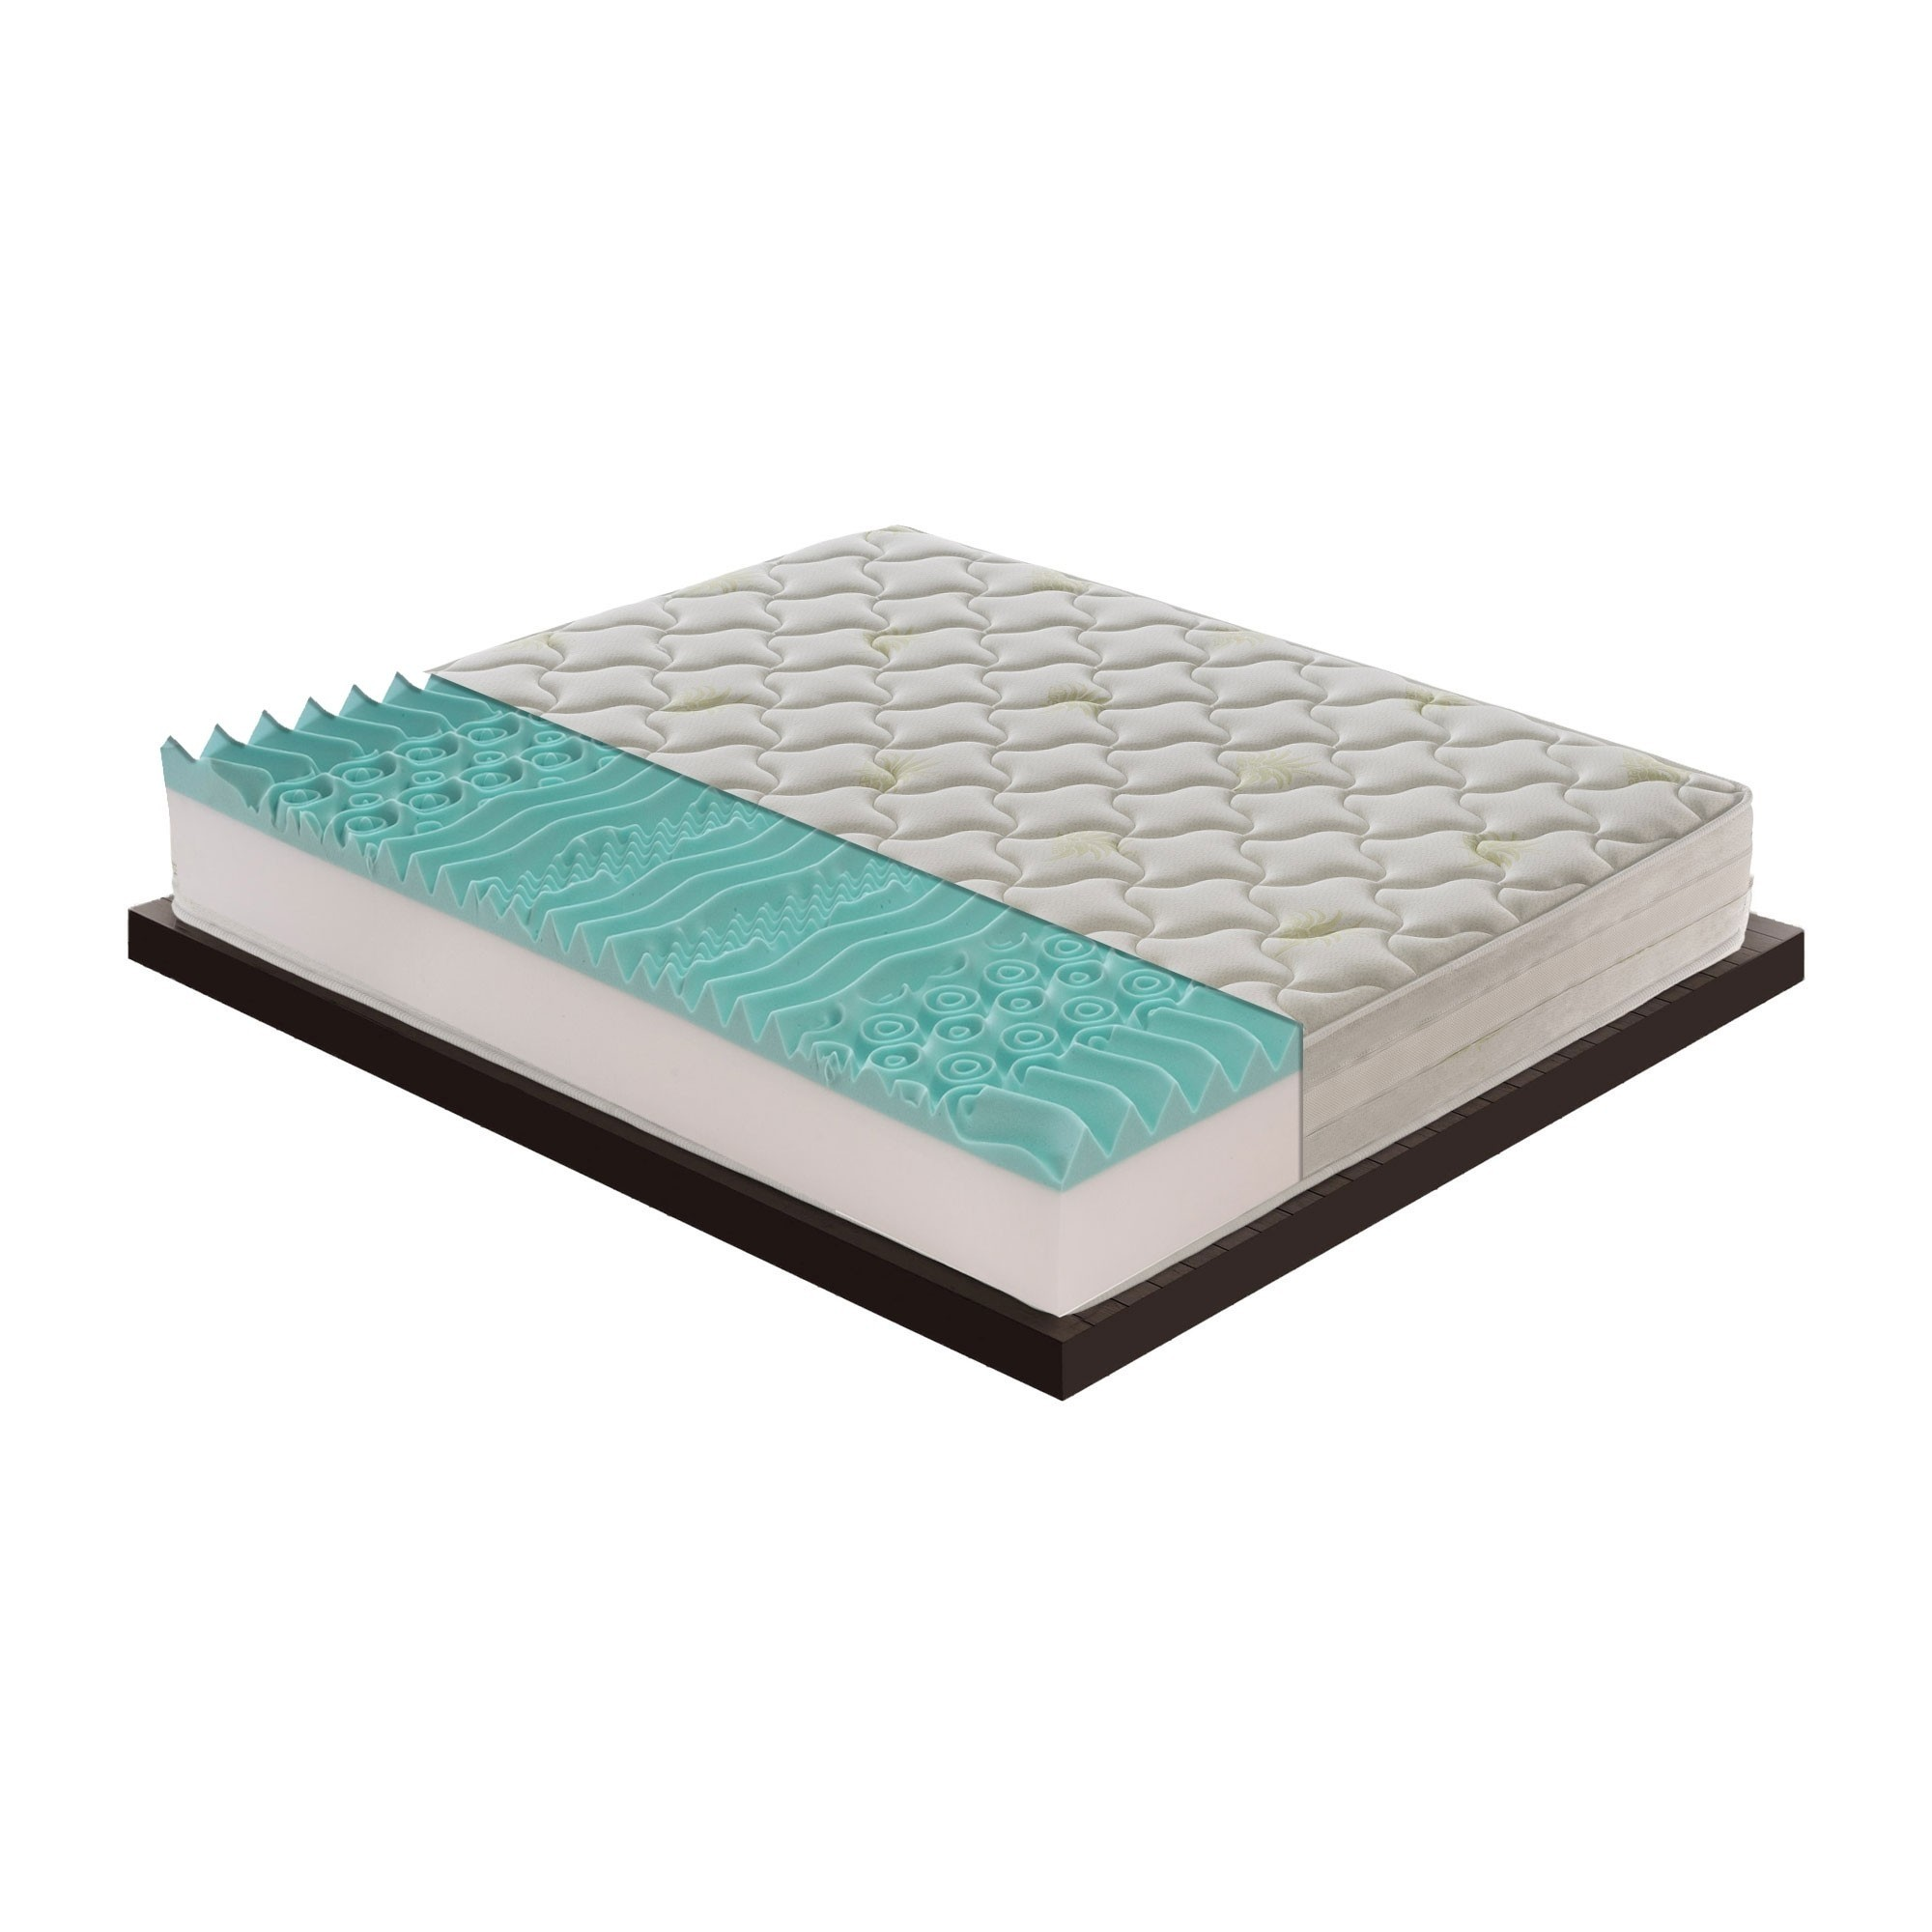 Materasso Ibiza in memory foam Mymemory 9 Zone differenziate tessuto Aloe